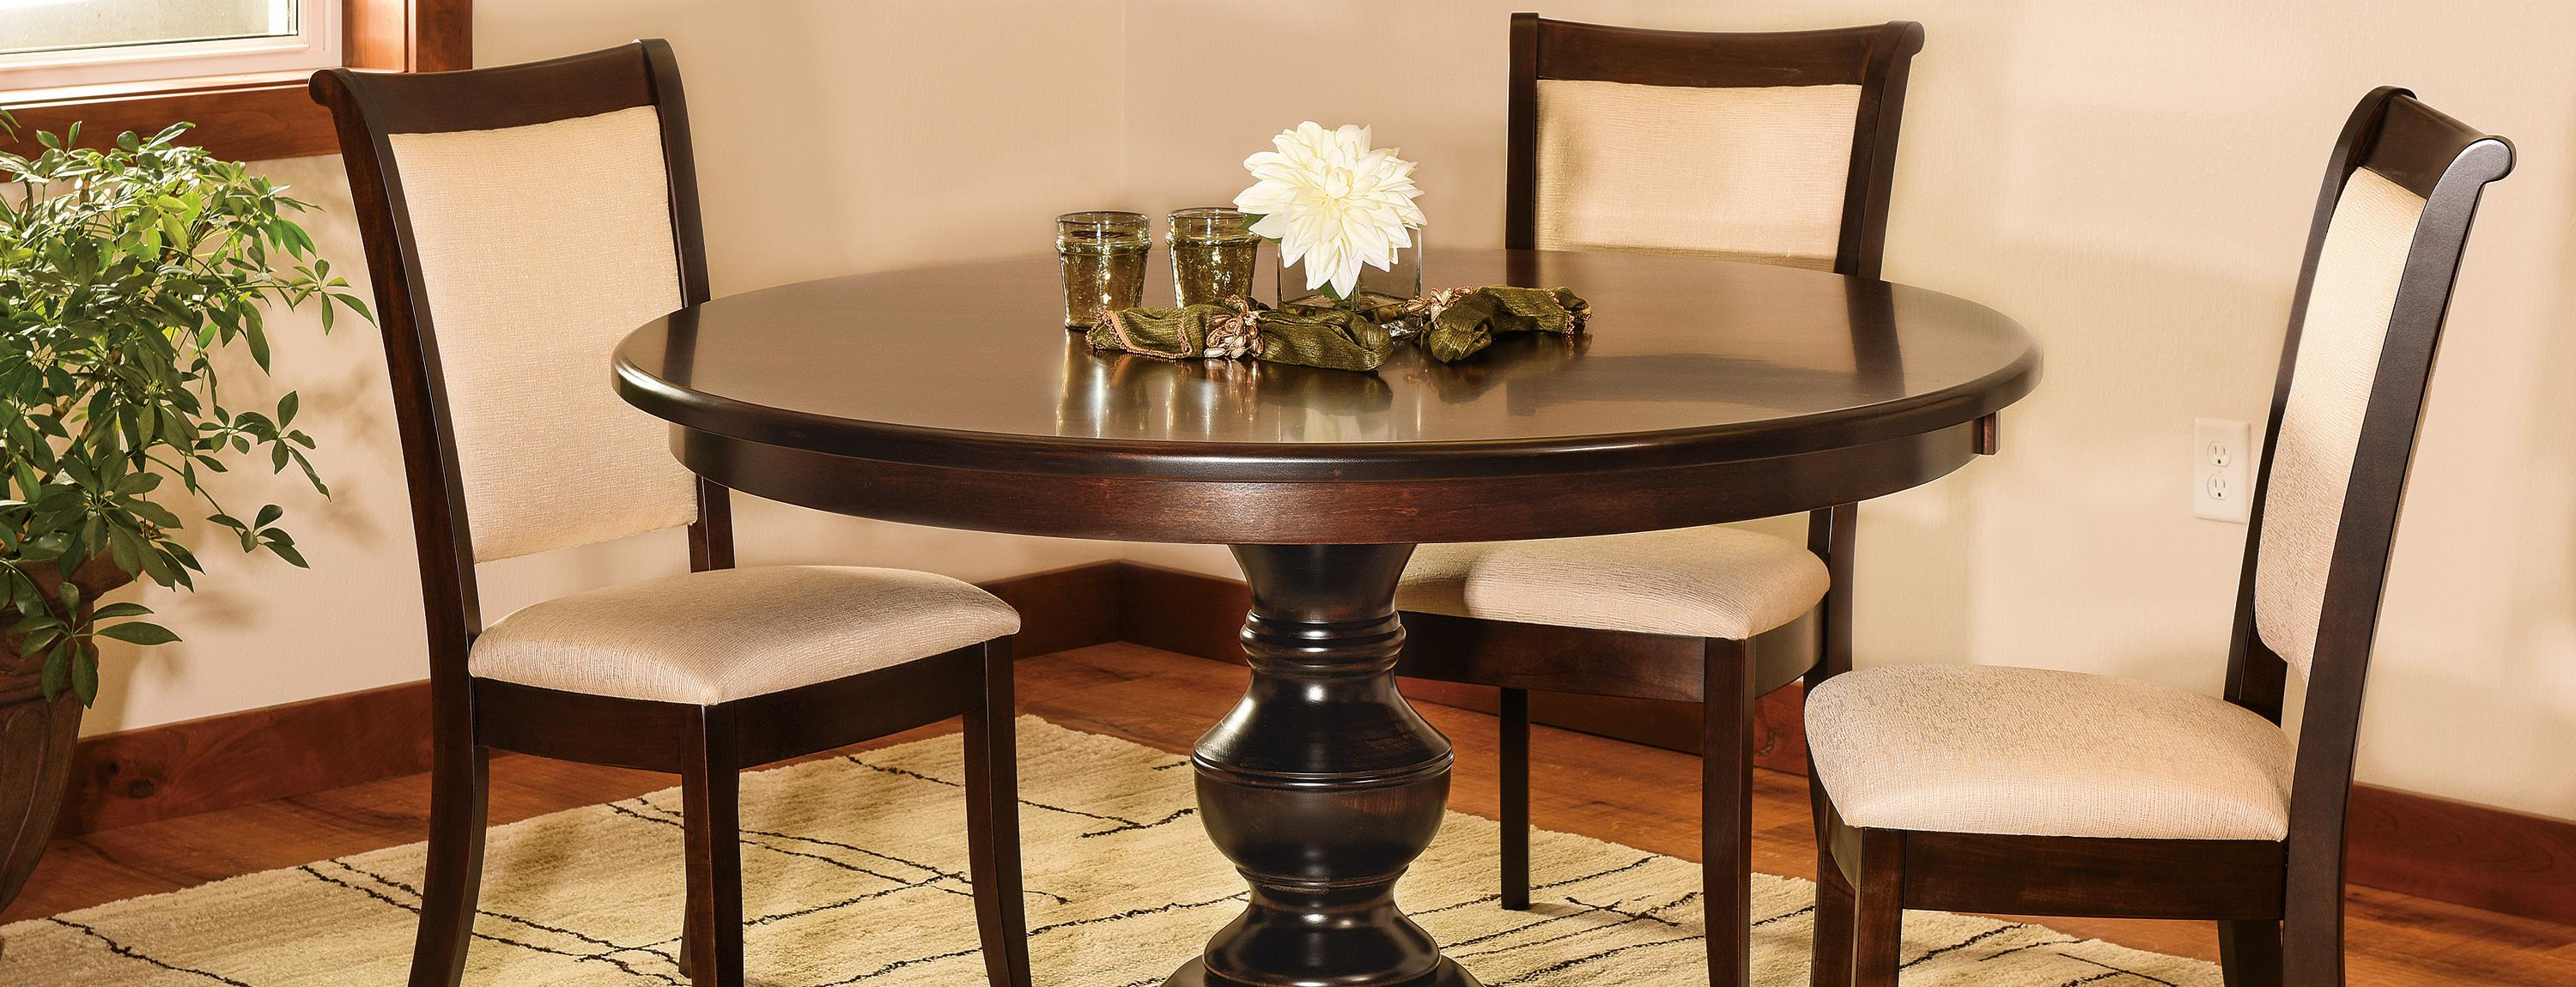 Remarkable Pedestal Tables Amish Furniture For Mankato Mn Home Interior And Landscaping Mentranervesignezvosmurscom